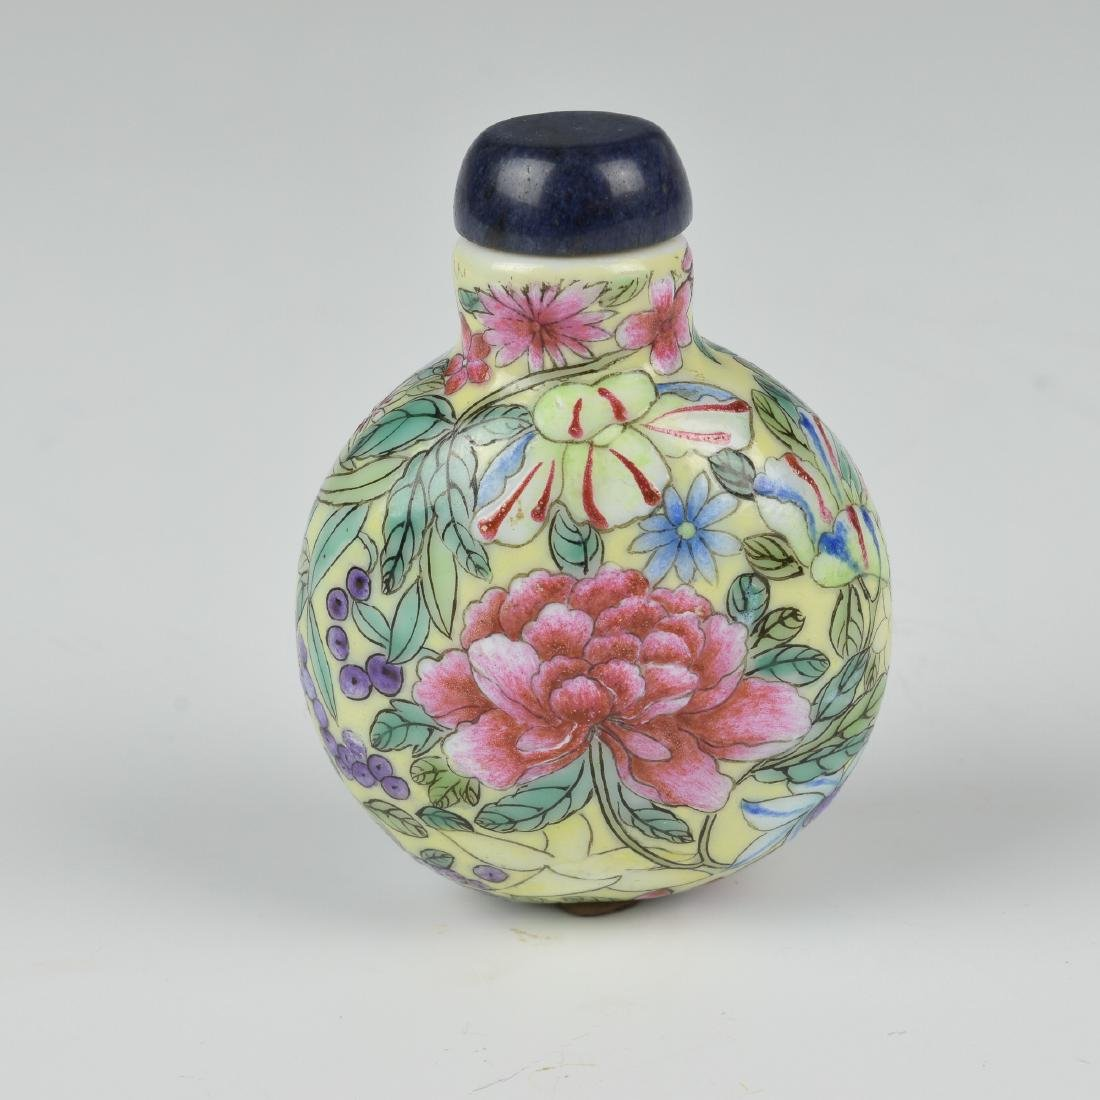 Chinese Millefleur Snuff Bottle, 19th Century - 3